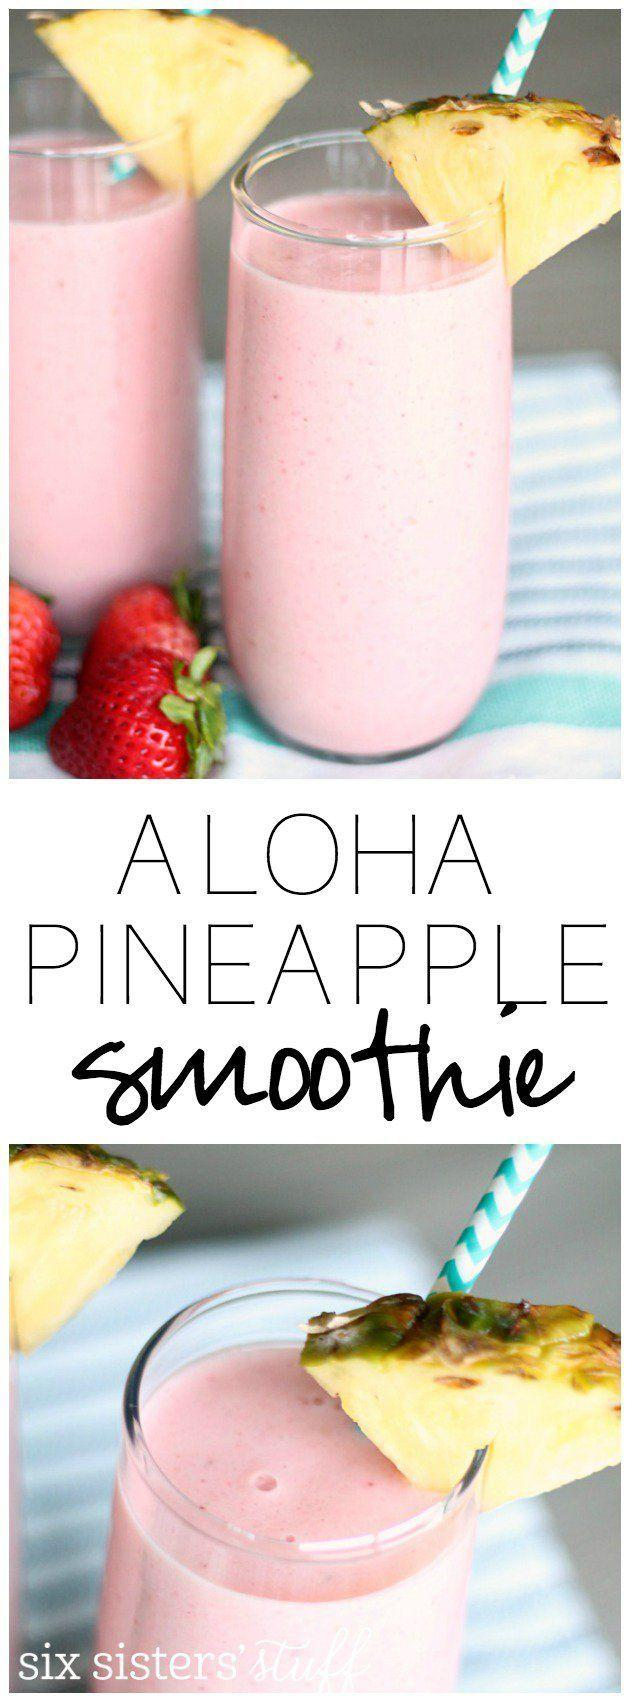 Wedding - Copycat Jamba Juice Aloha Pineapple Smoothie